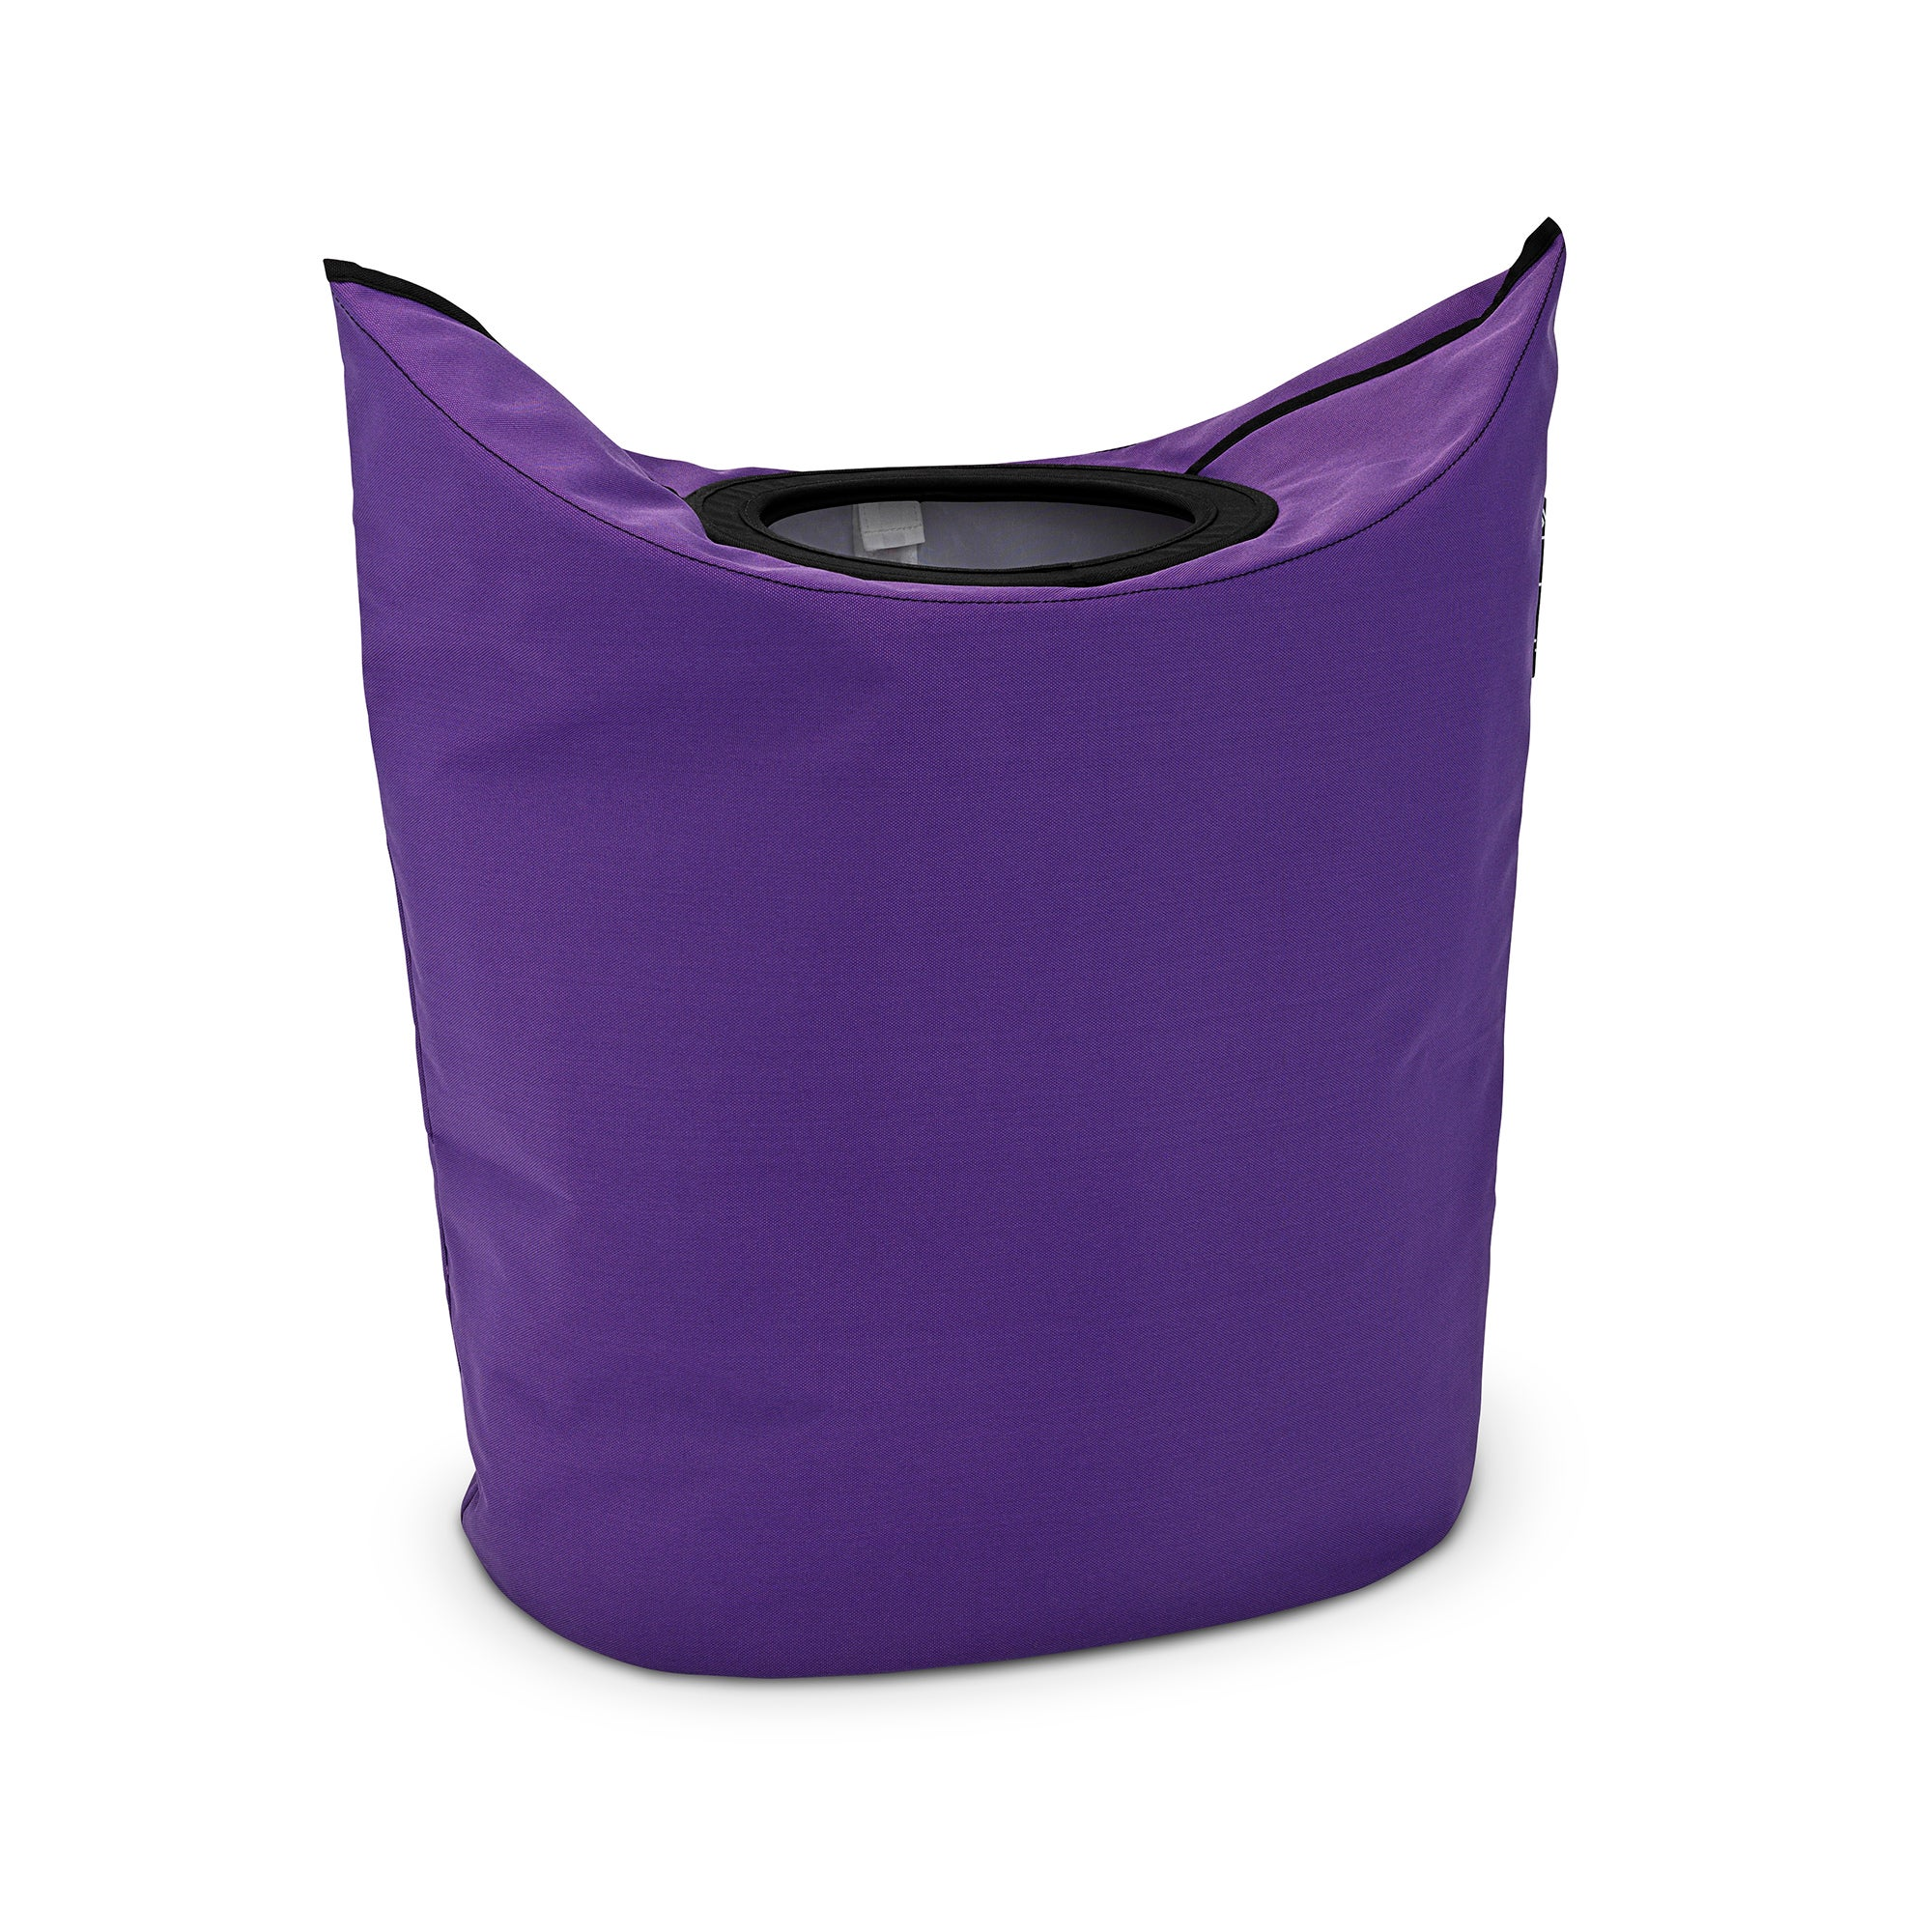 Brabantia Purple 50 Litre Laundry Bag